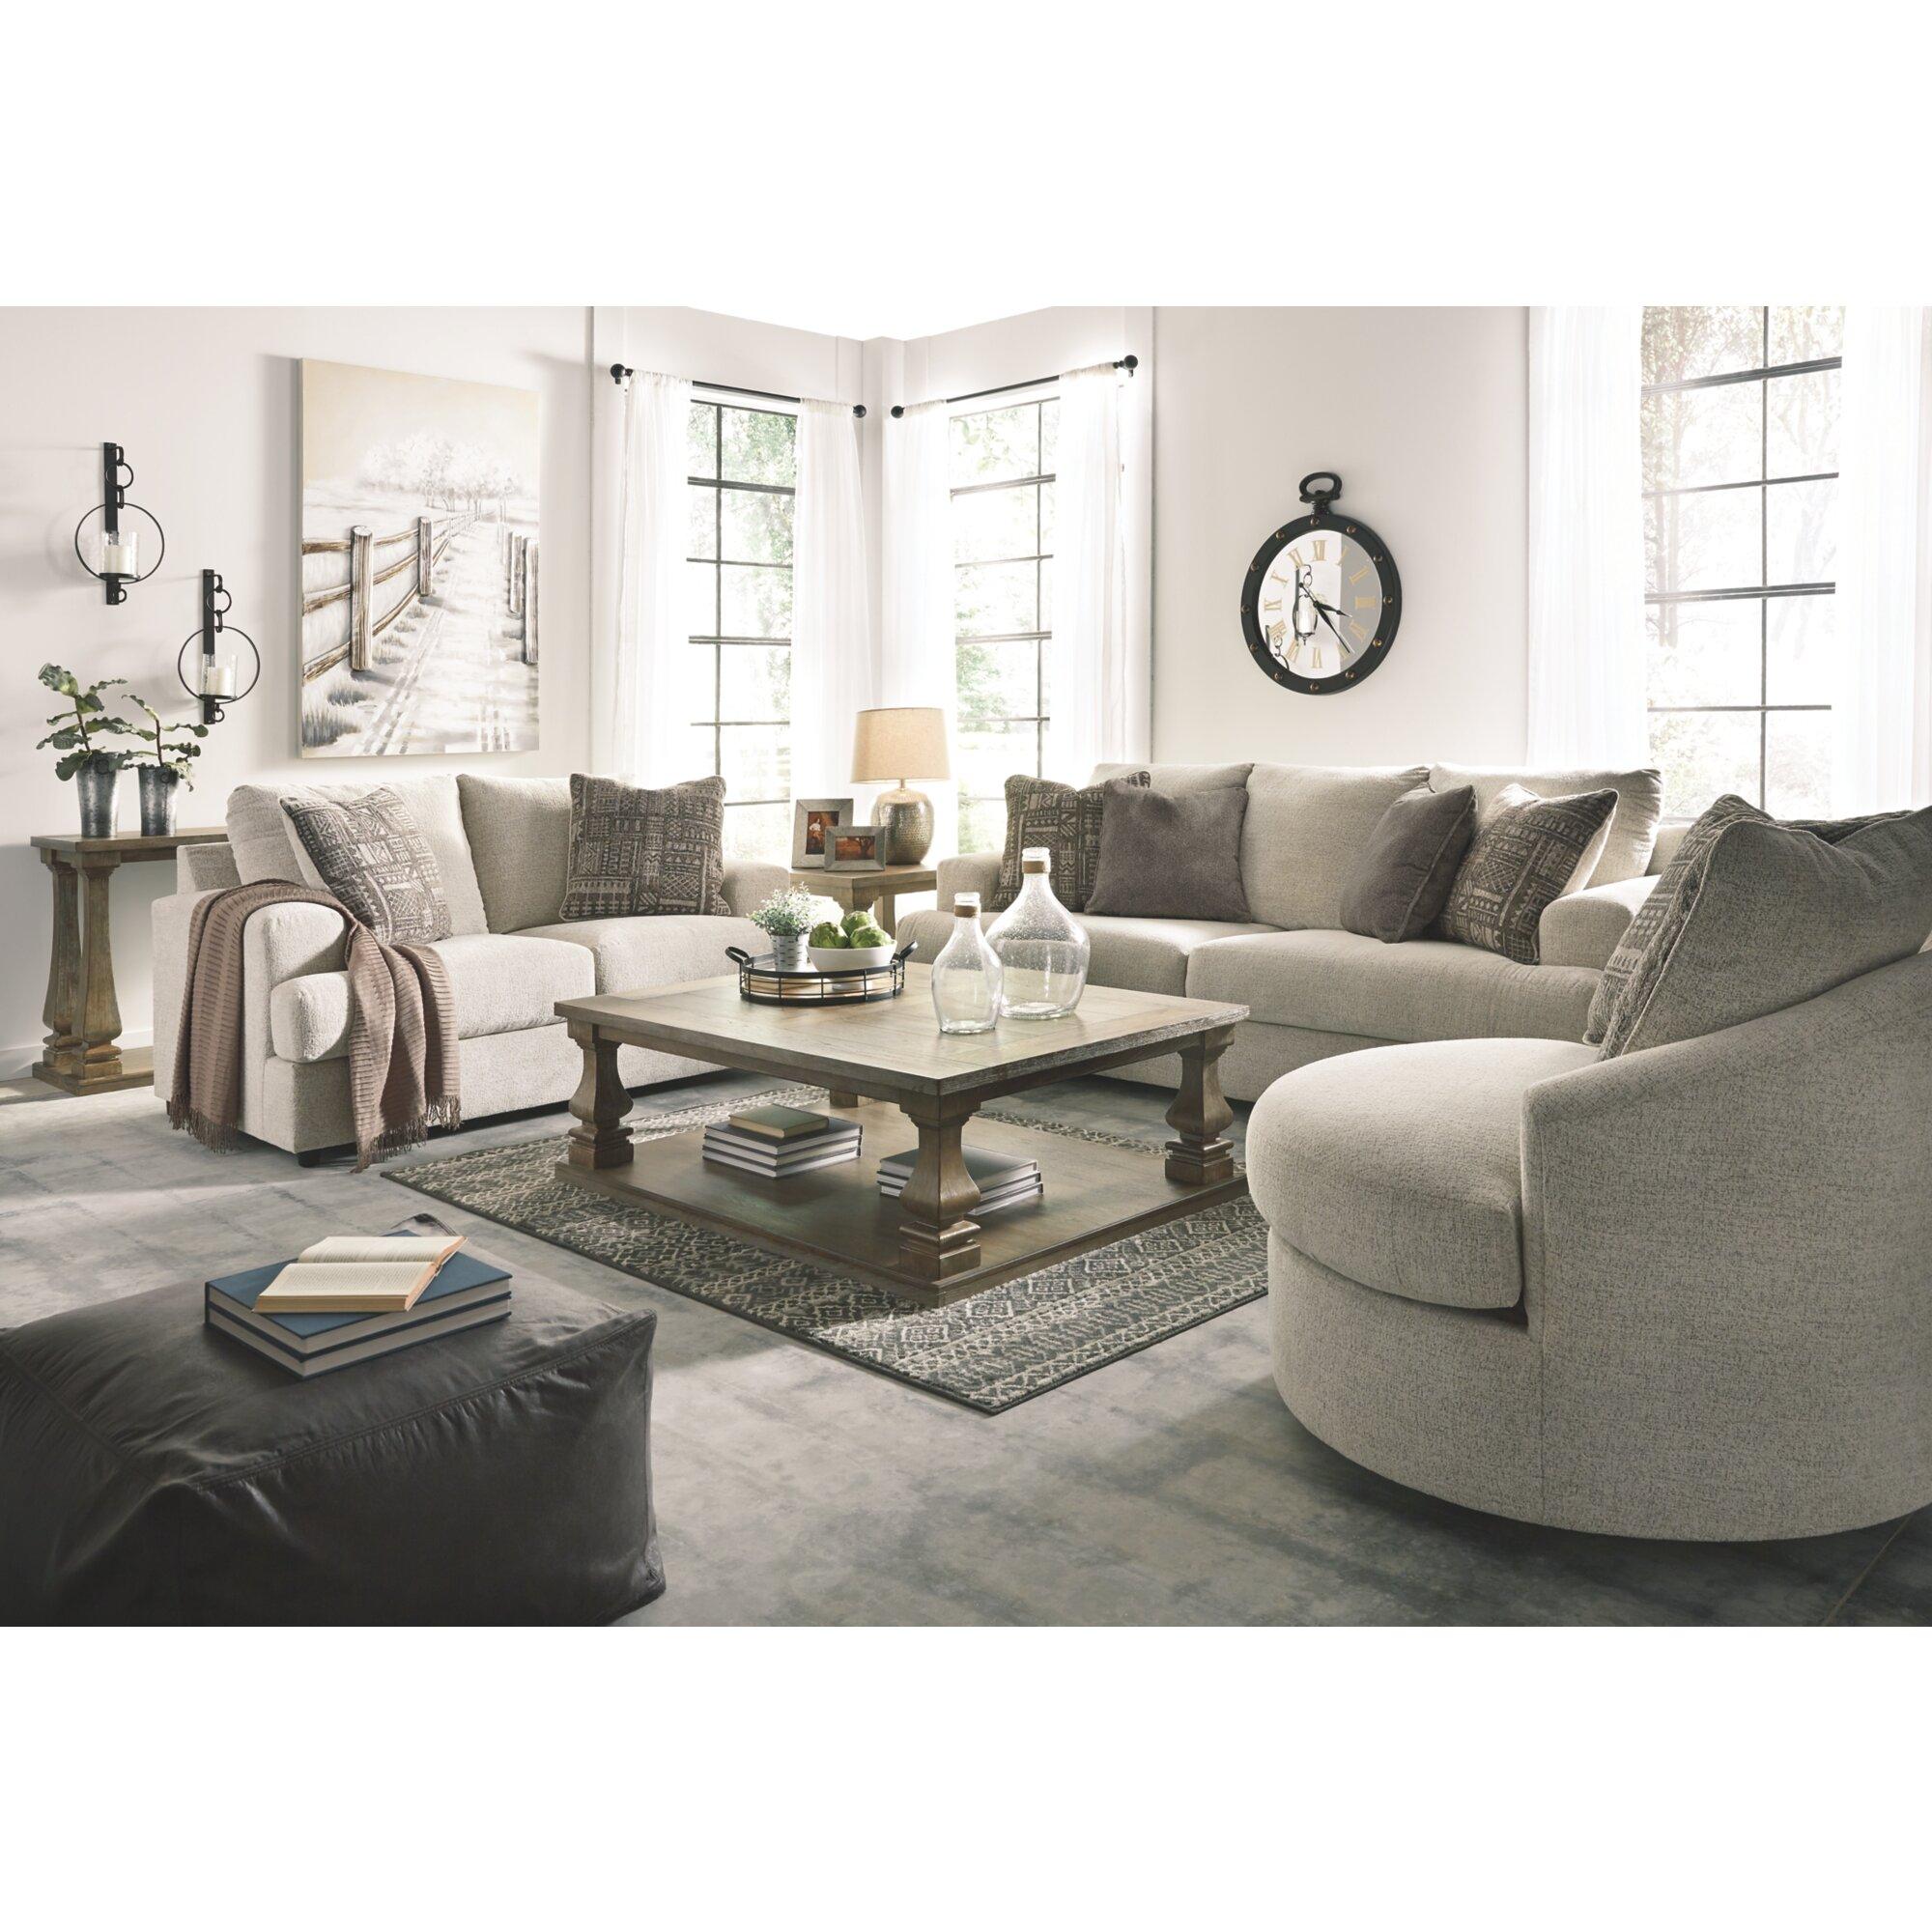 Alandari 3 Piece Sleeper Configurable Living Room Set